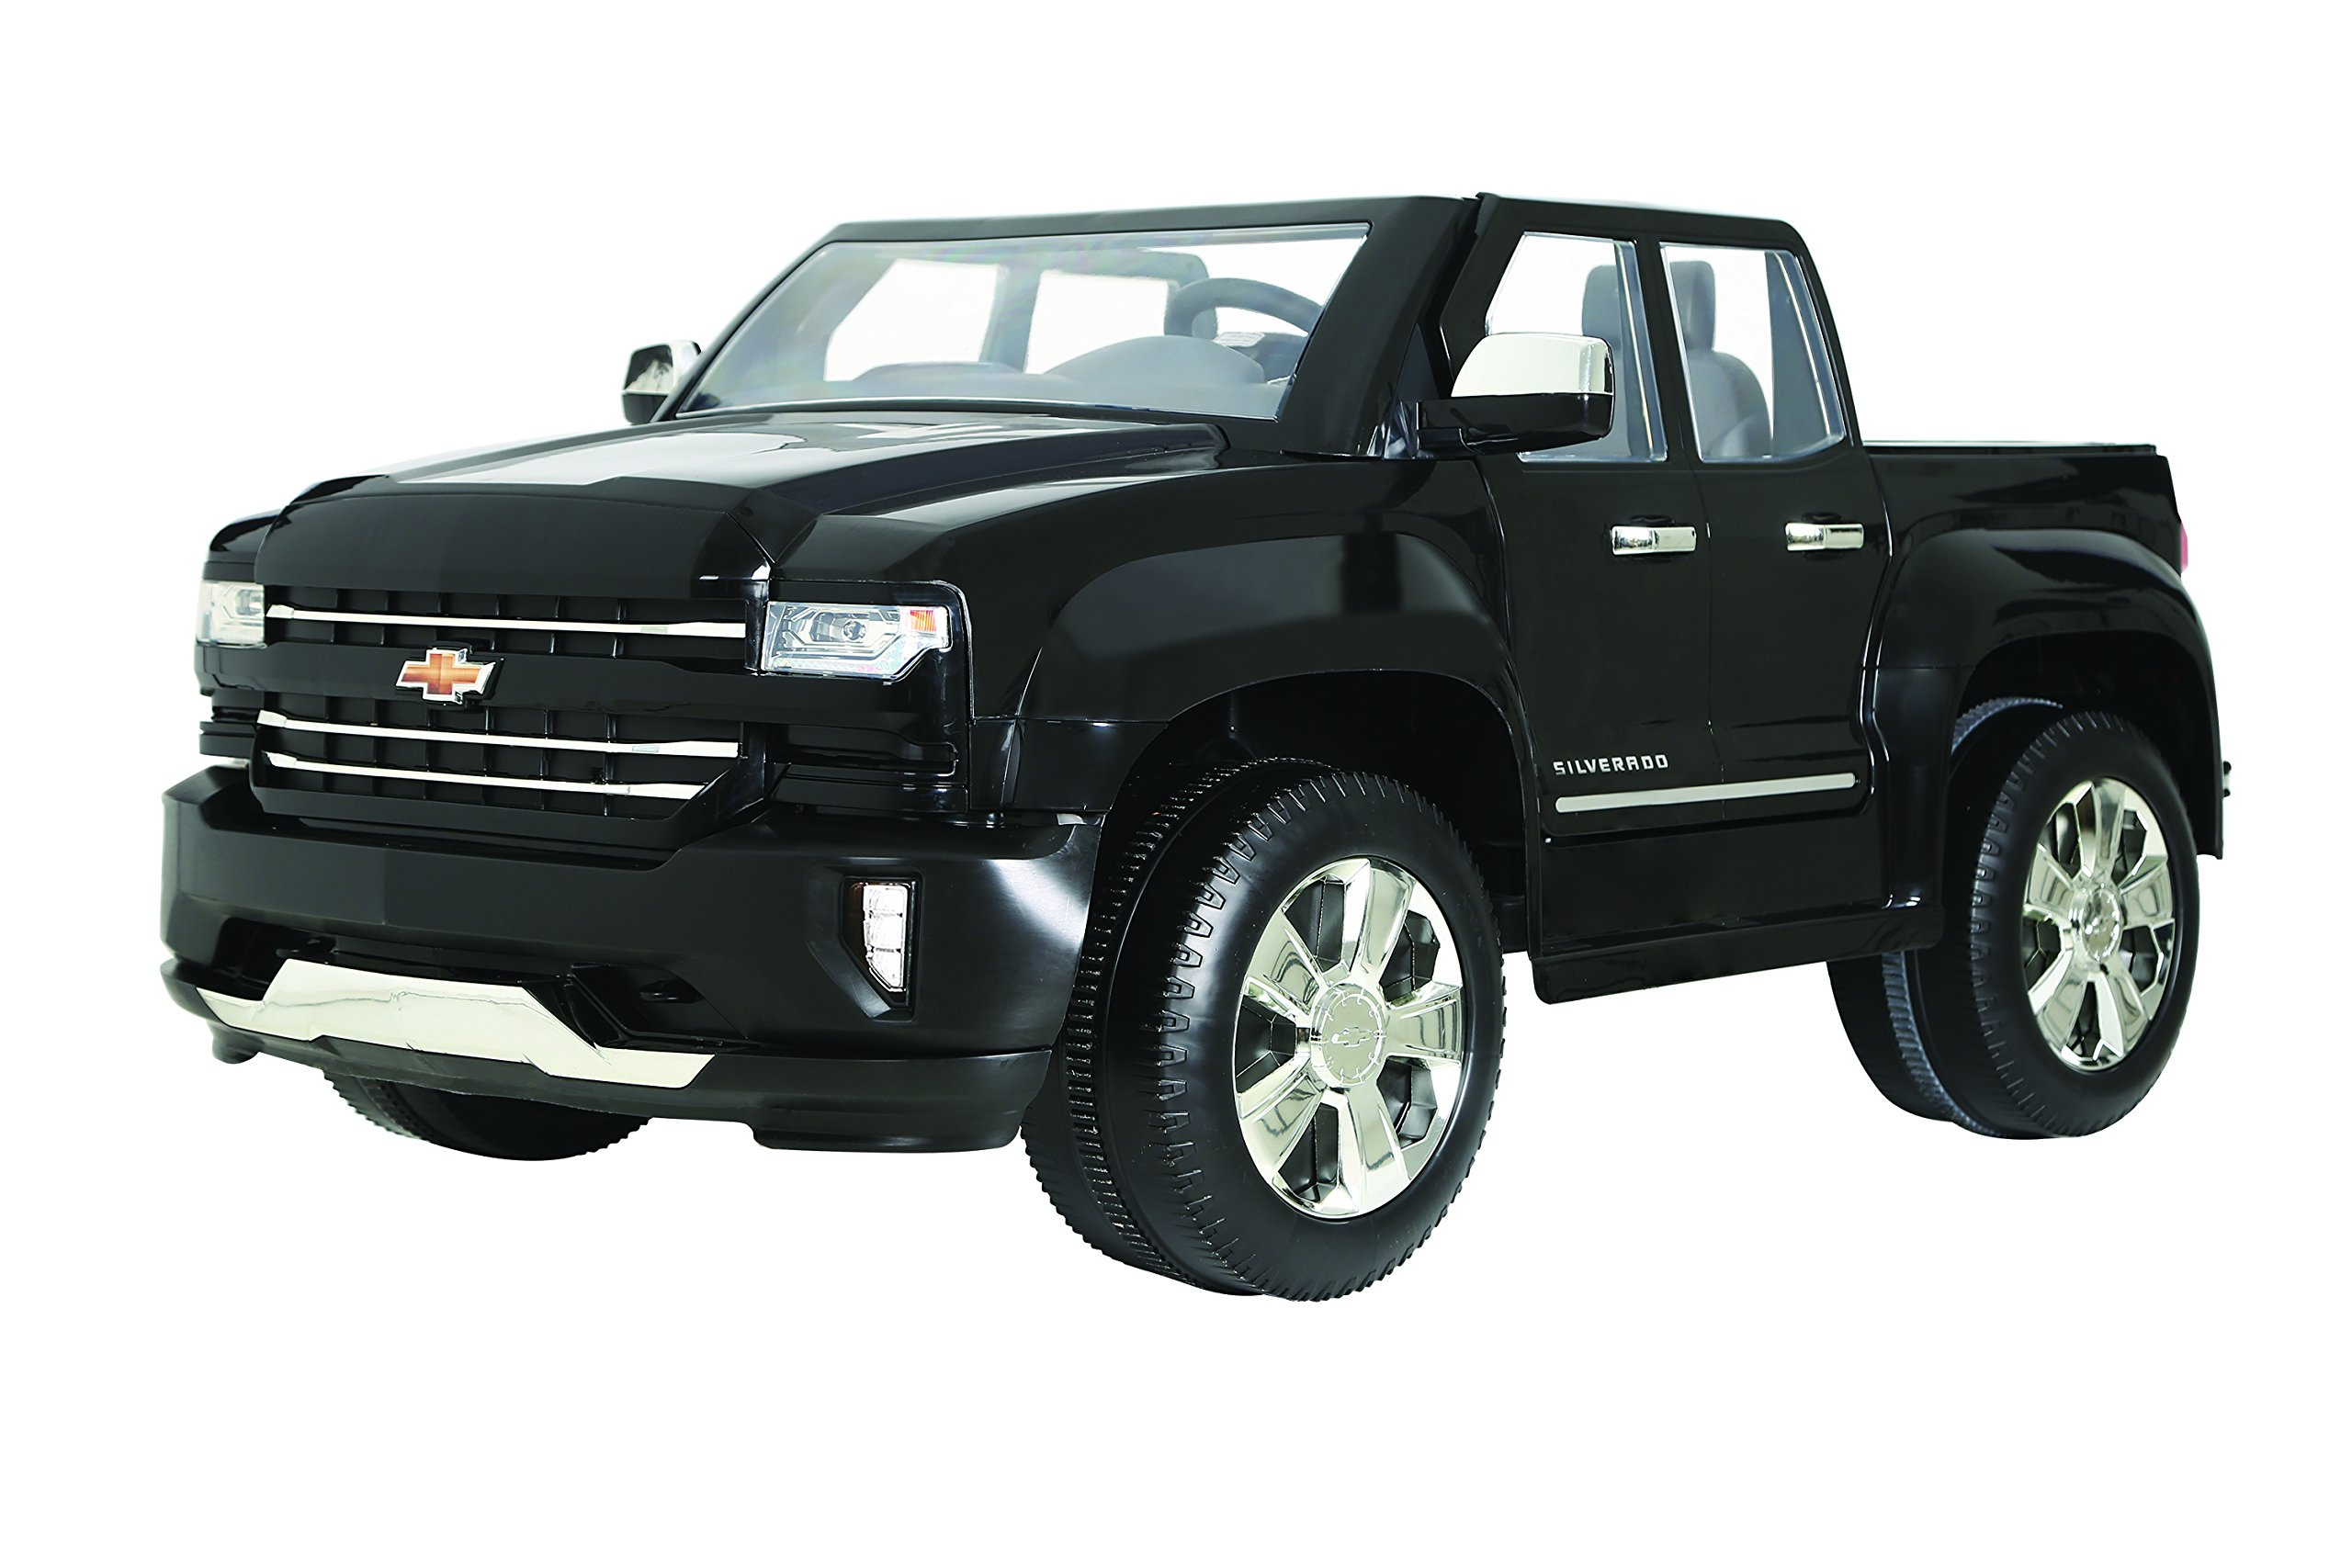 Rollplay Chevy Silverado 12 Volt Battery Ride-on with New Grille, Black